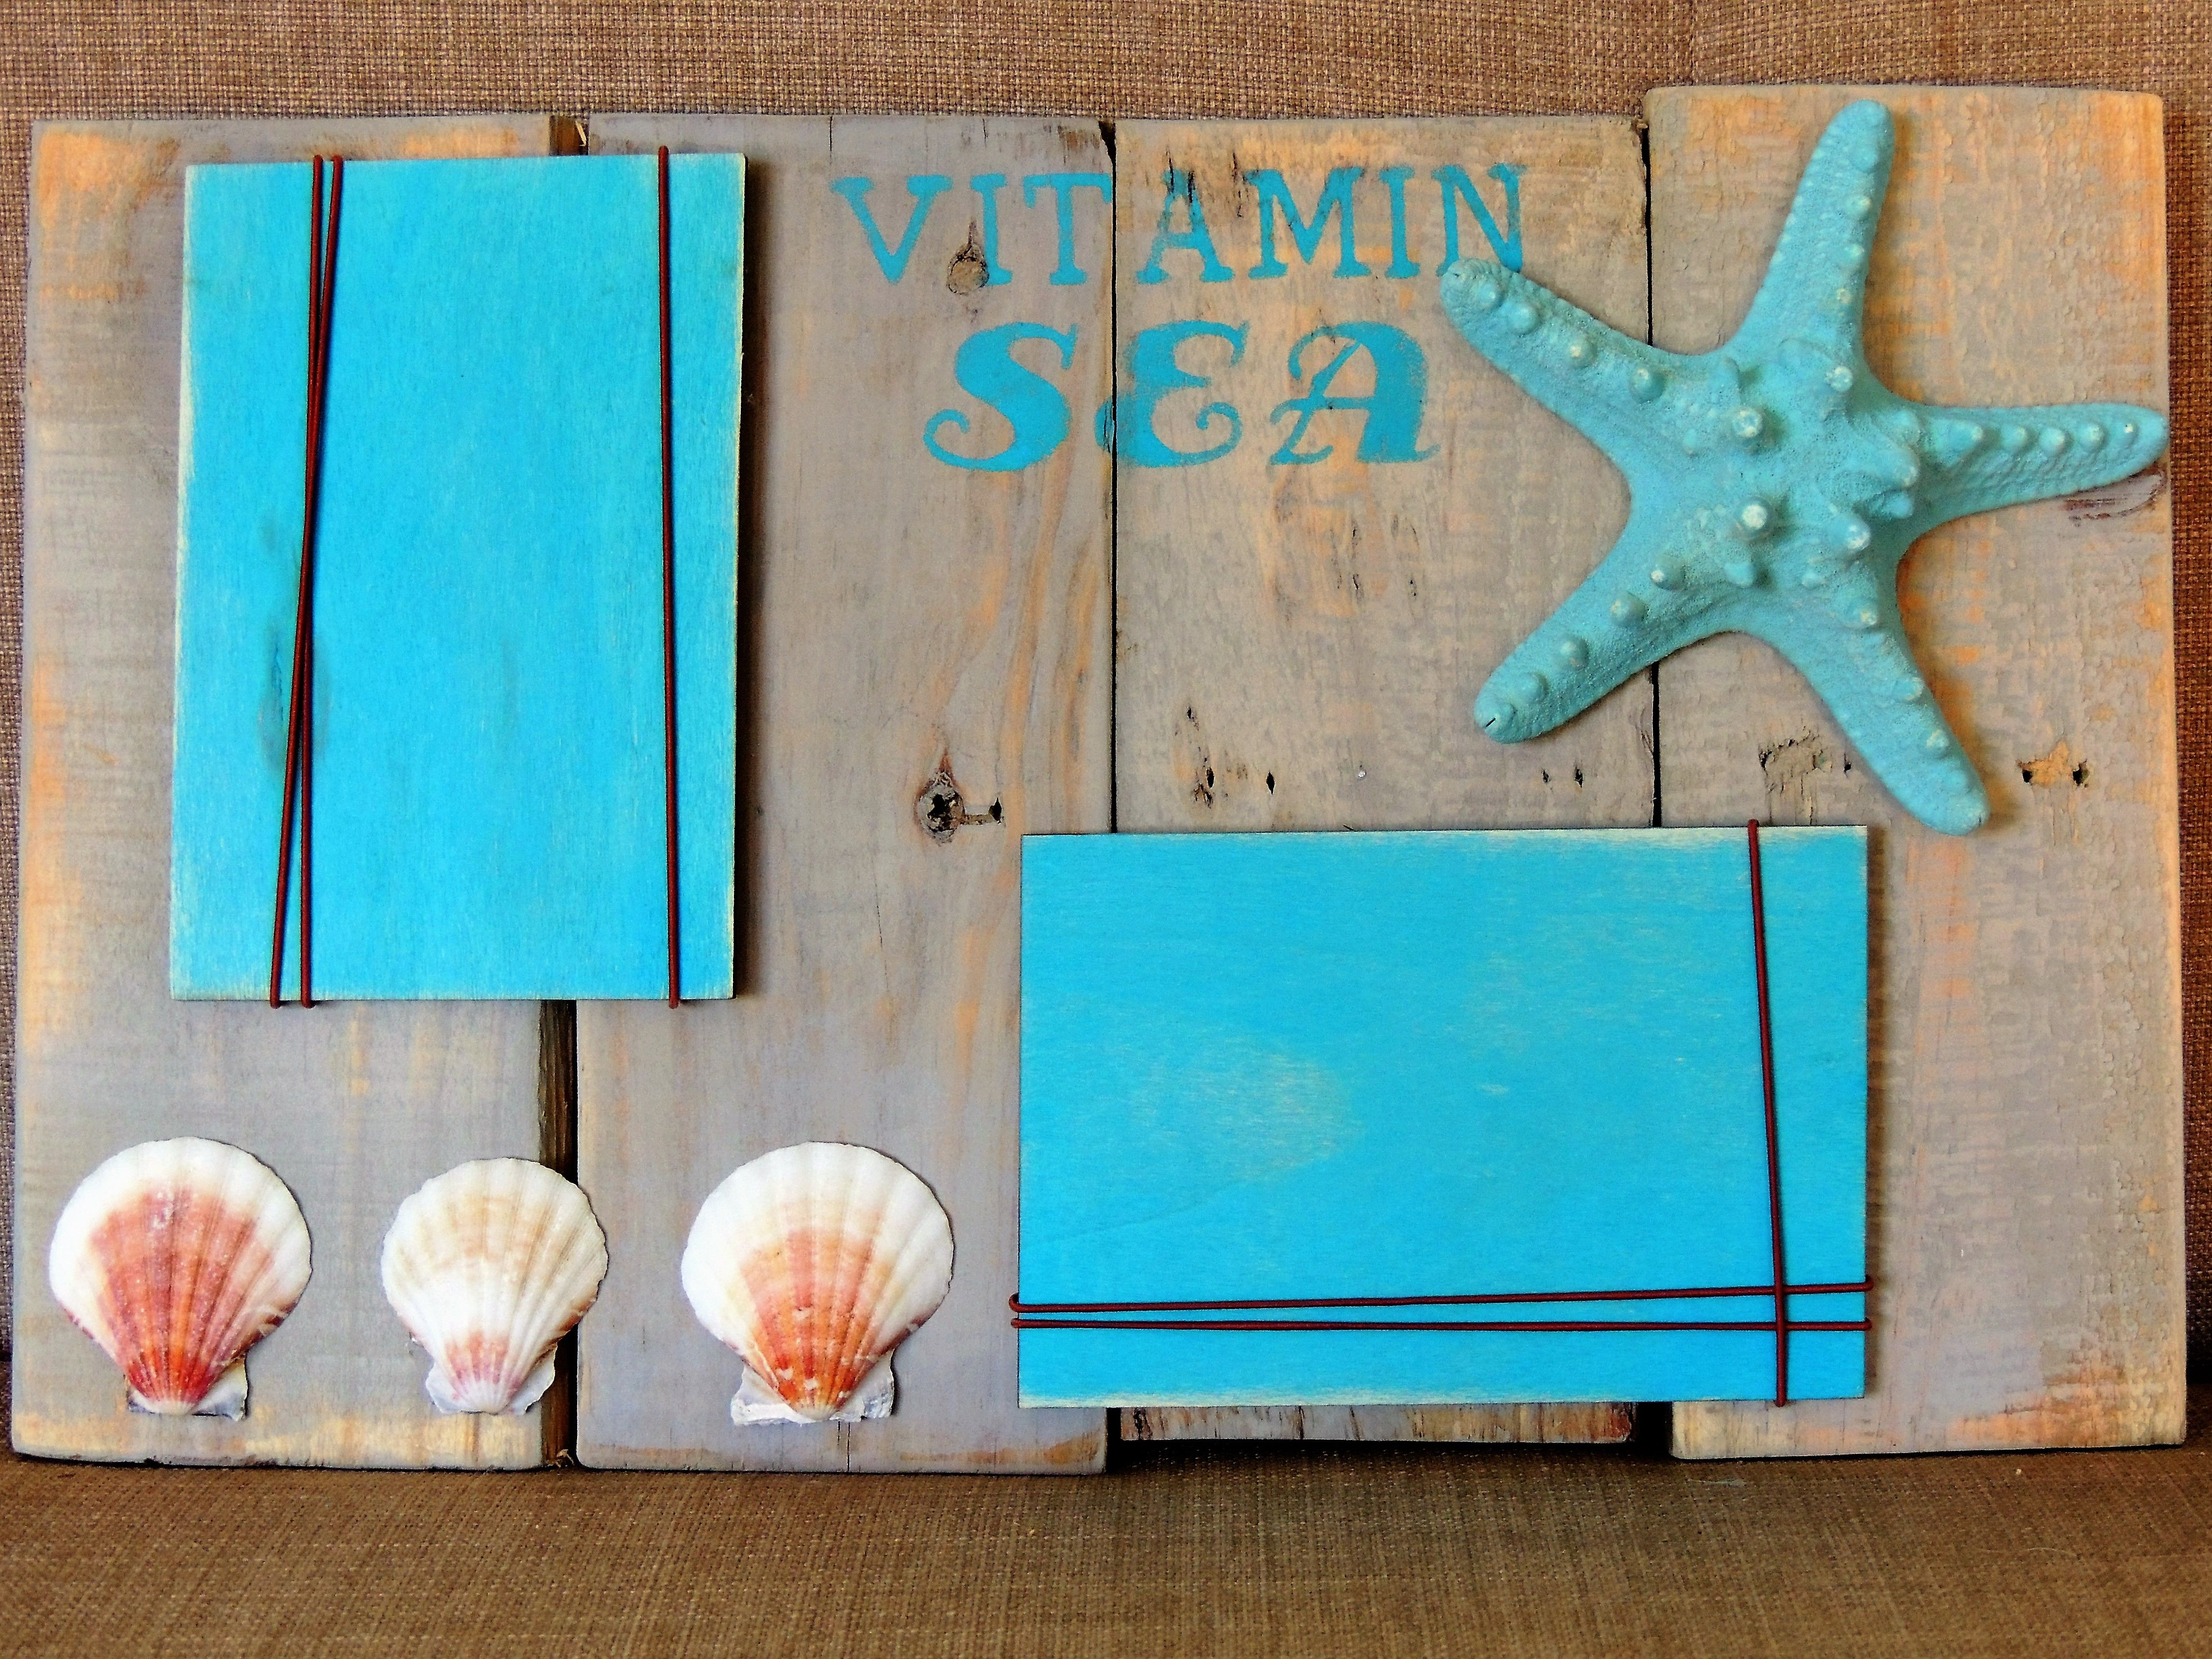 Recycled Pallet Wood Used To Create A Beach Themed Collage Frame Just Slip Your Pictures Under The Elasti Recycled Pallet Unique Items Products Collage Frames